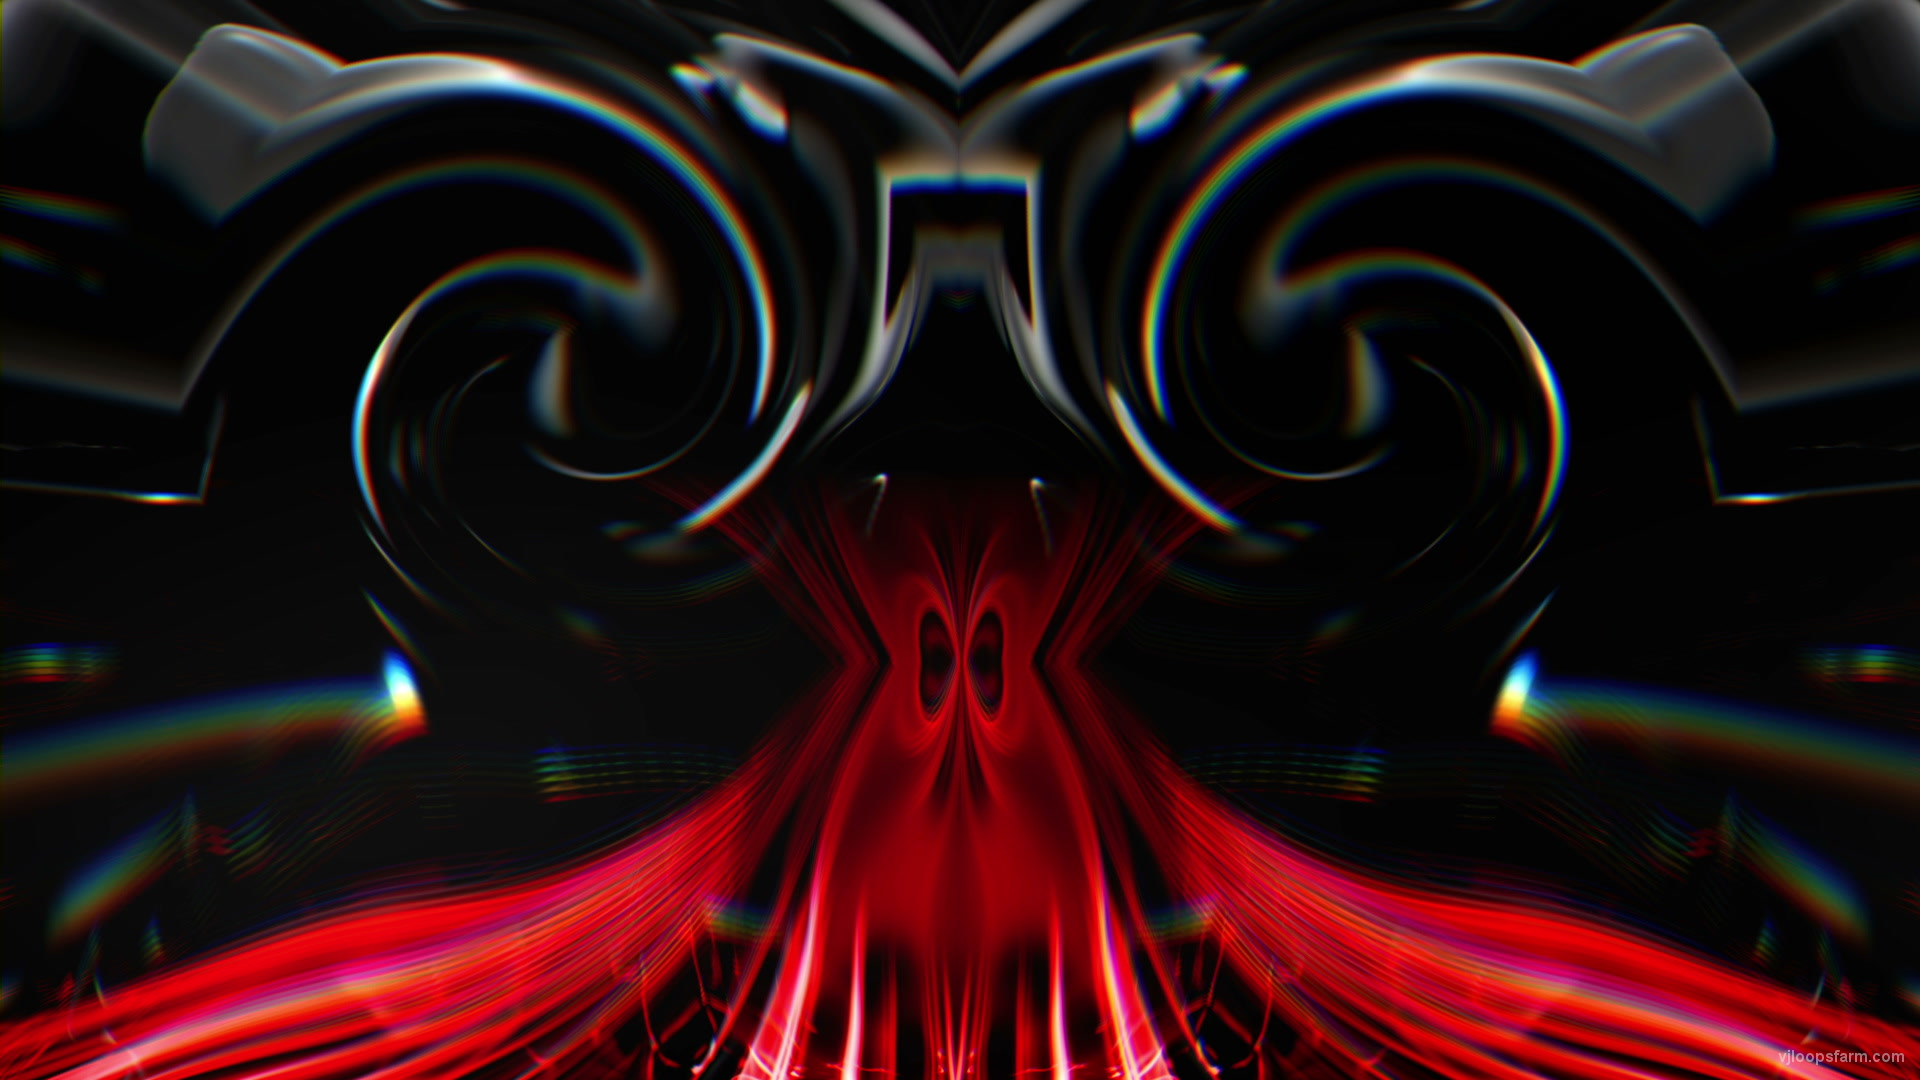 vj video background Red-Eval_1920x1080_25fps_VJLoop_LIMEART_003